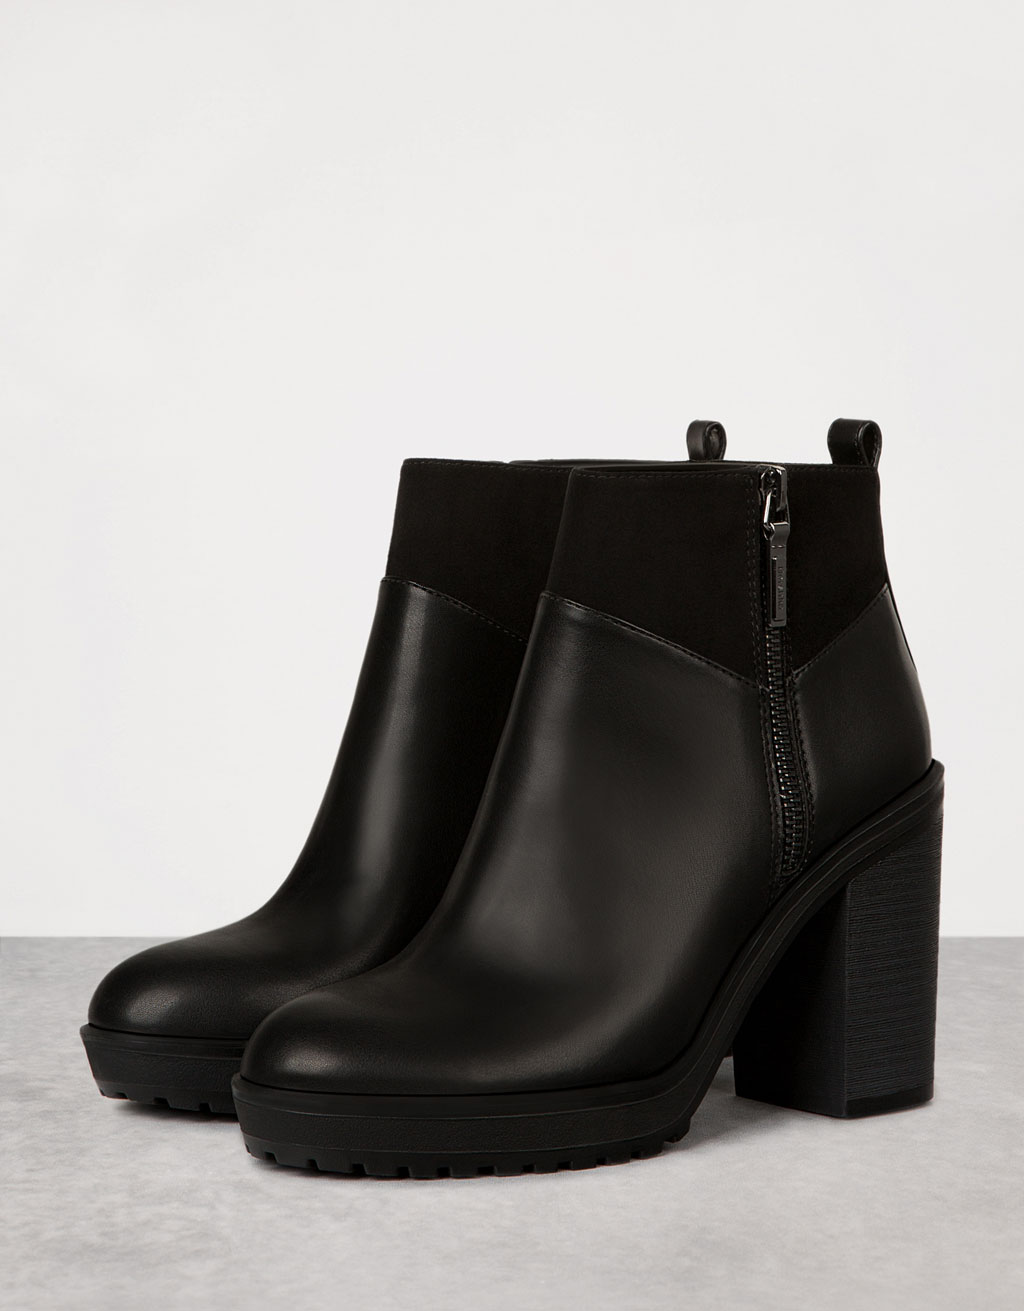 Combined wide platform heeled ankle boots